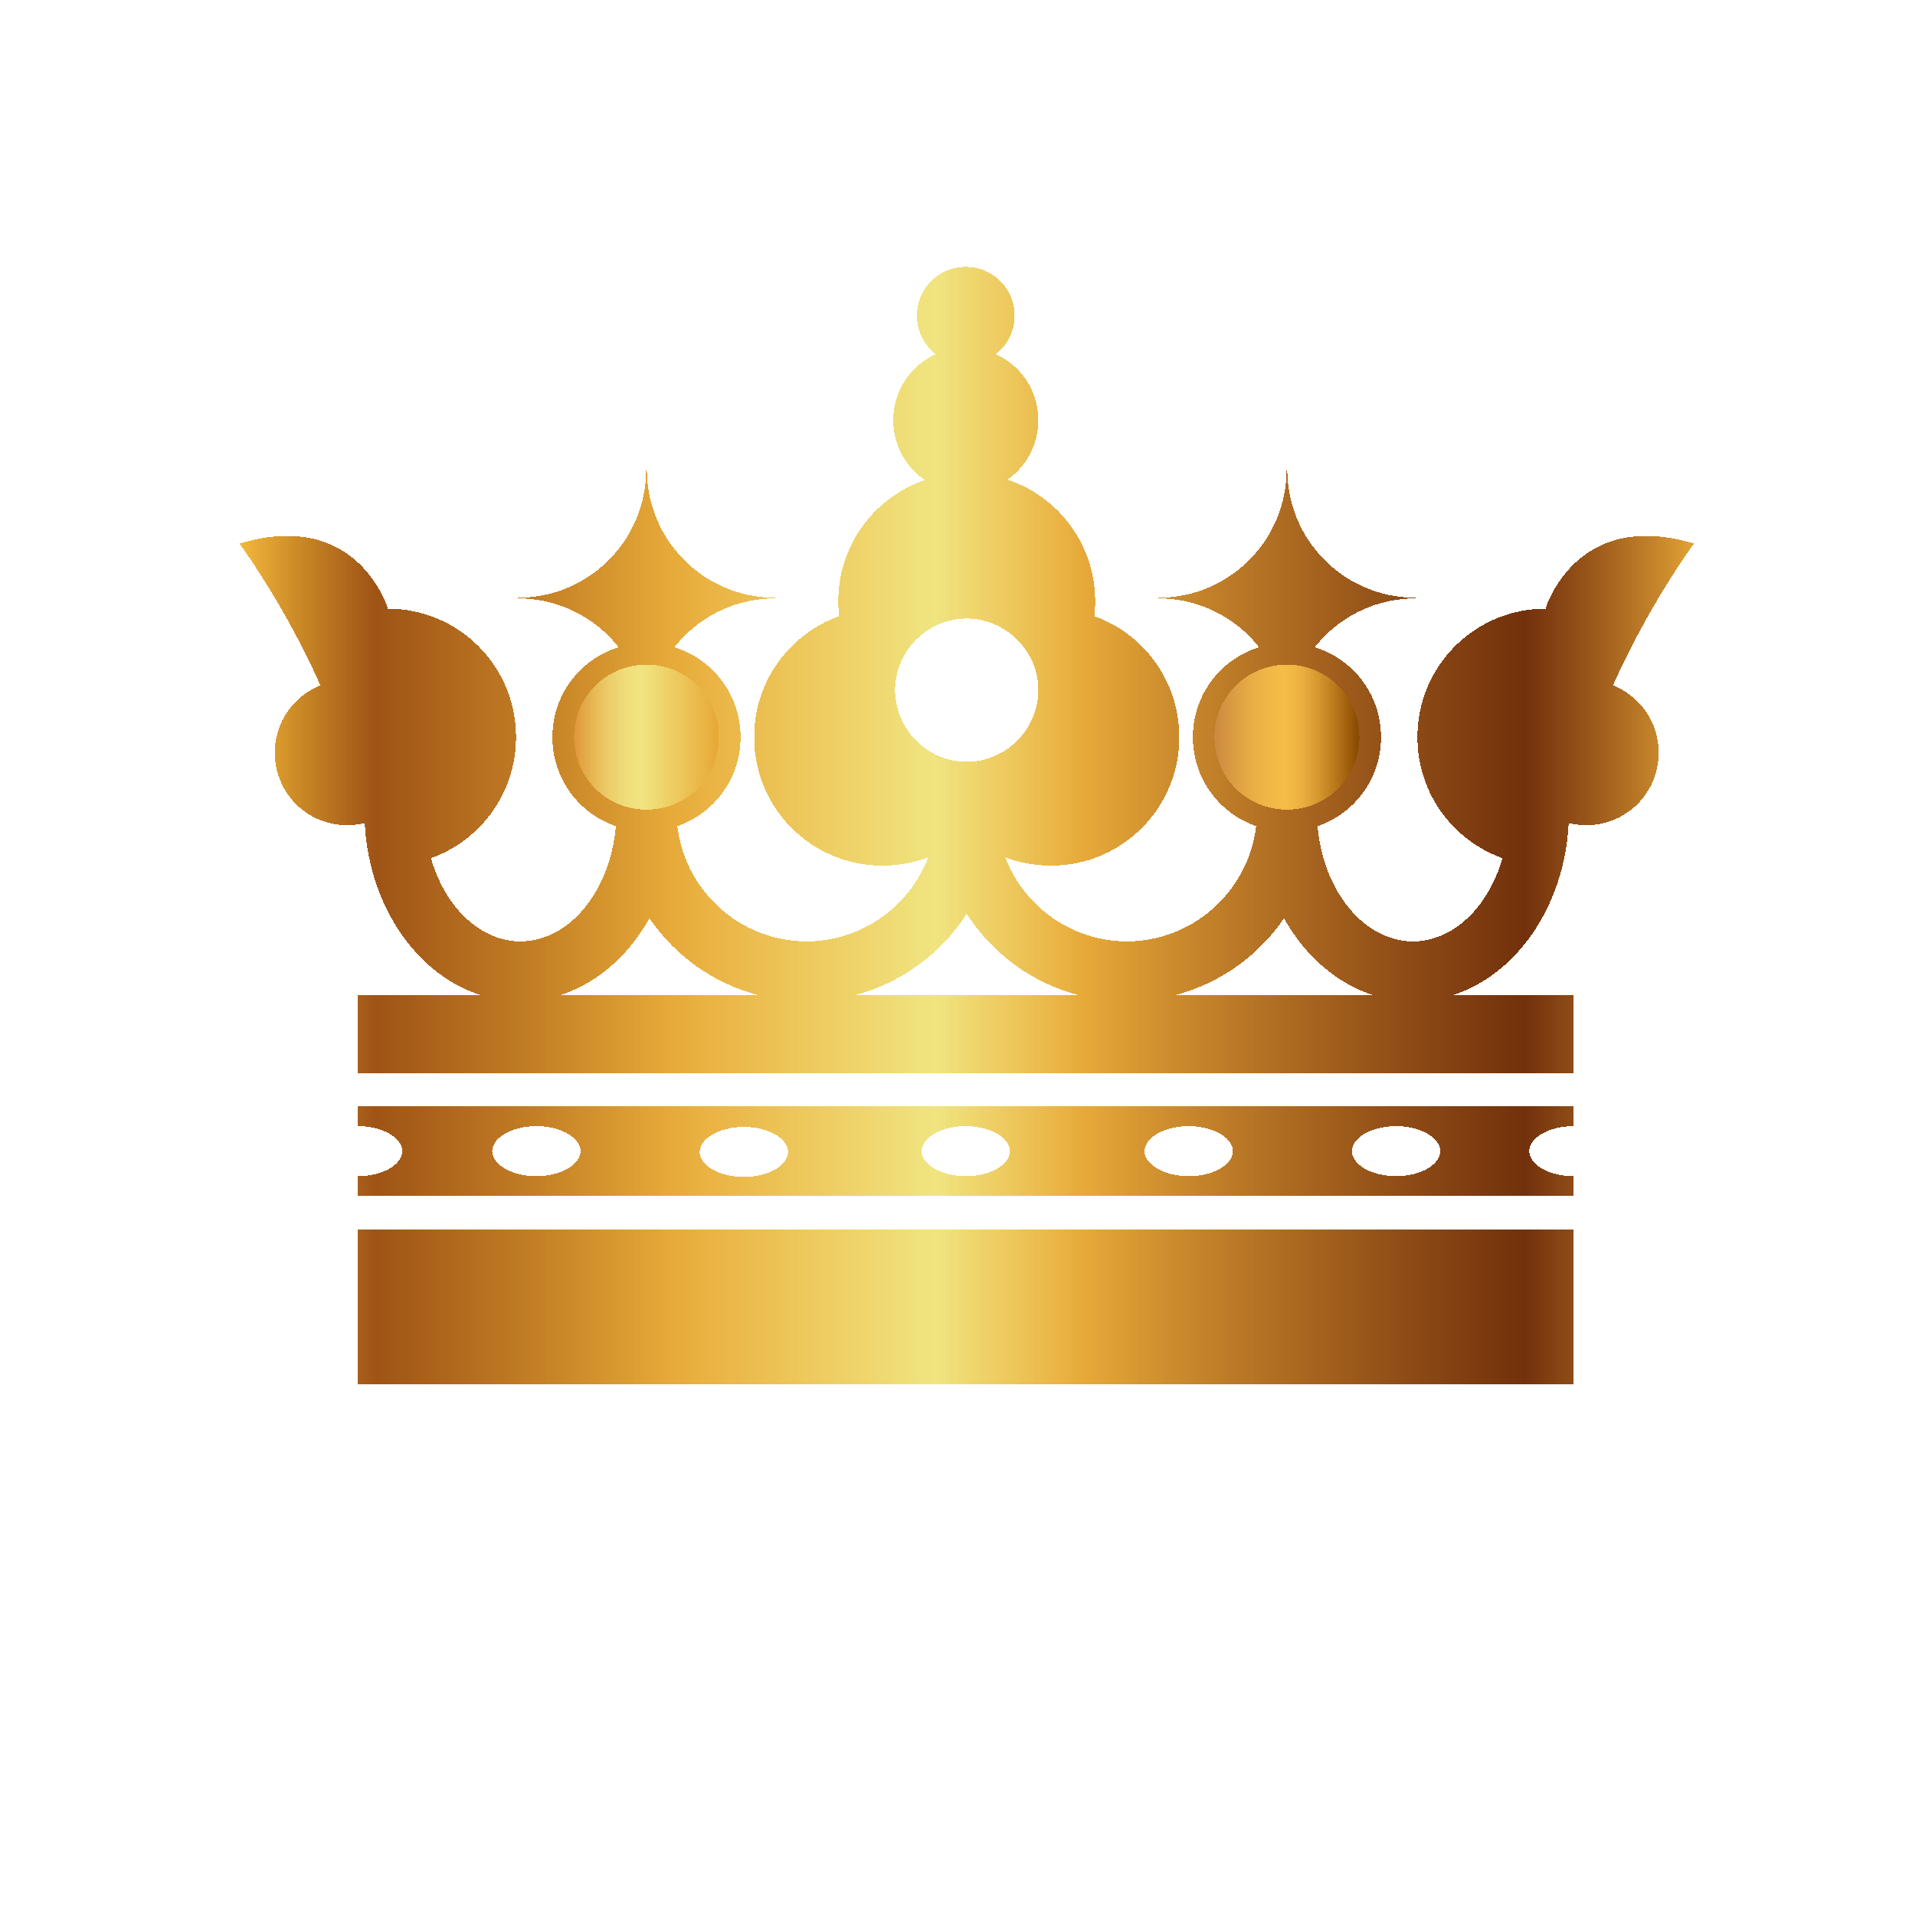 Crown with a rounded bottom clipart jpg freeuse stock Majestic printing that won't set you back a king's ransom. Your ... jpg freeuse stock